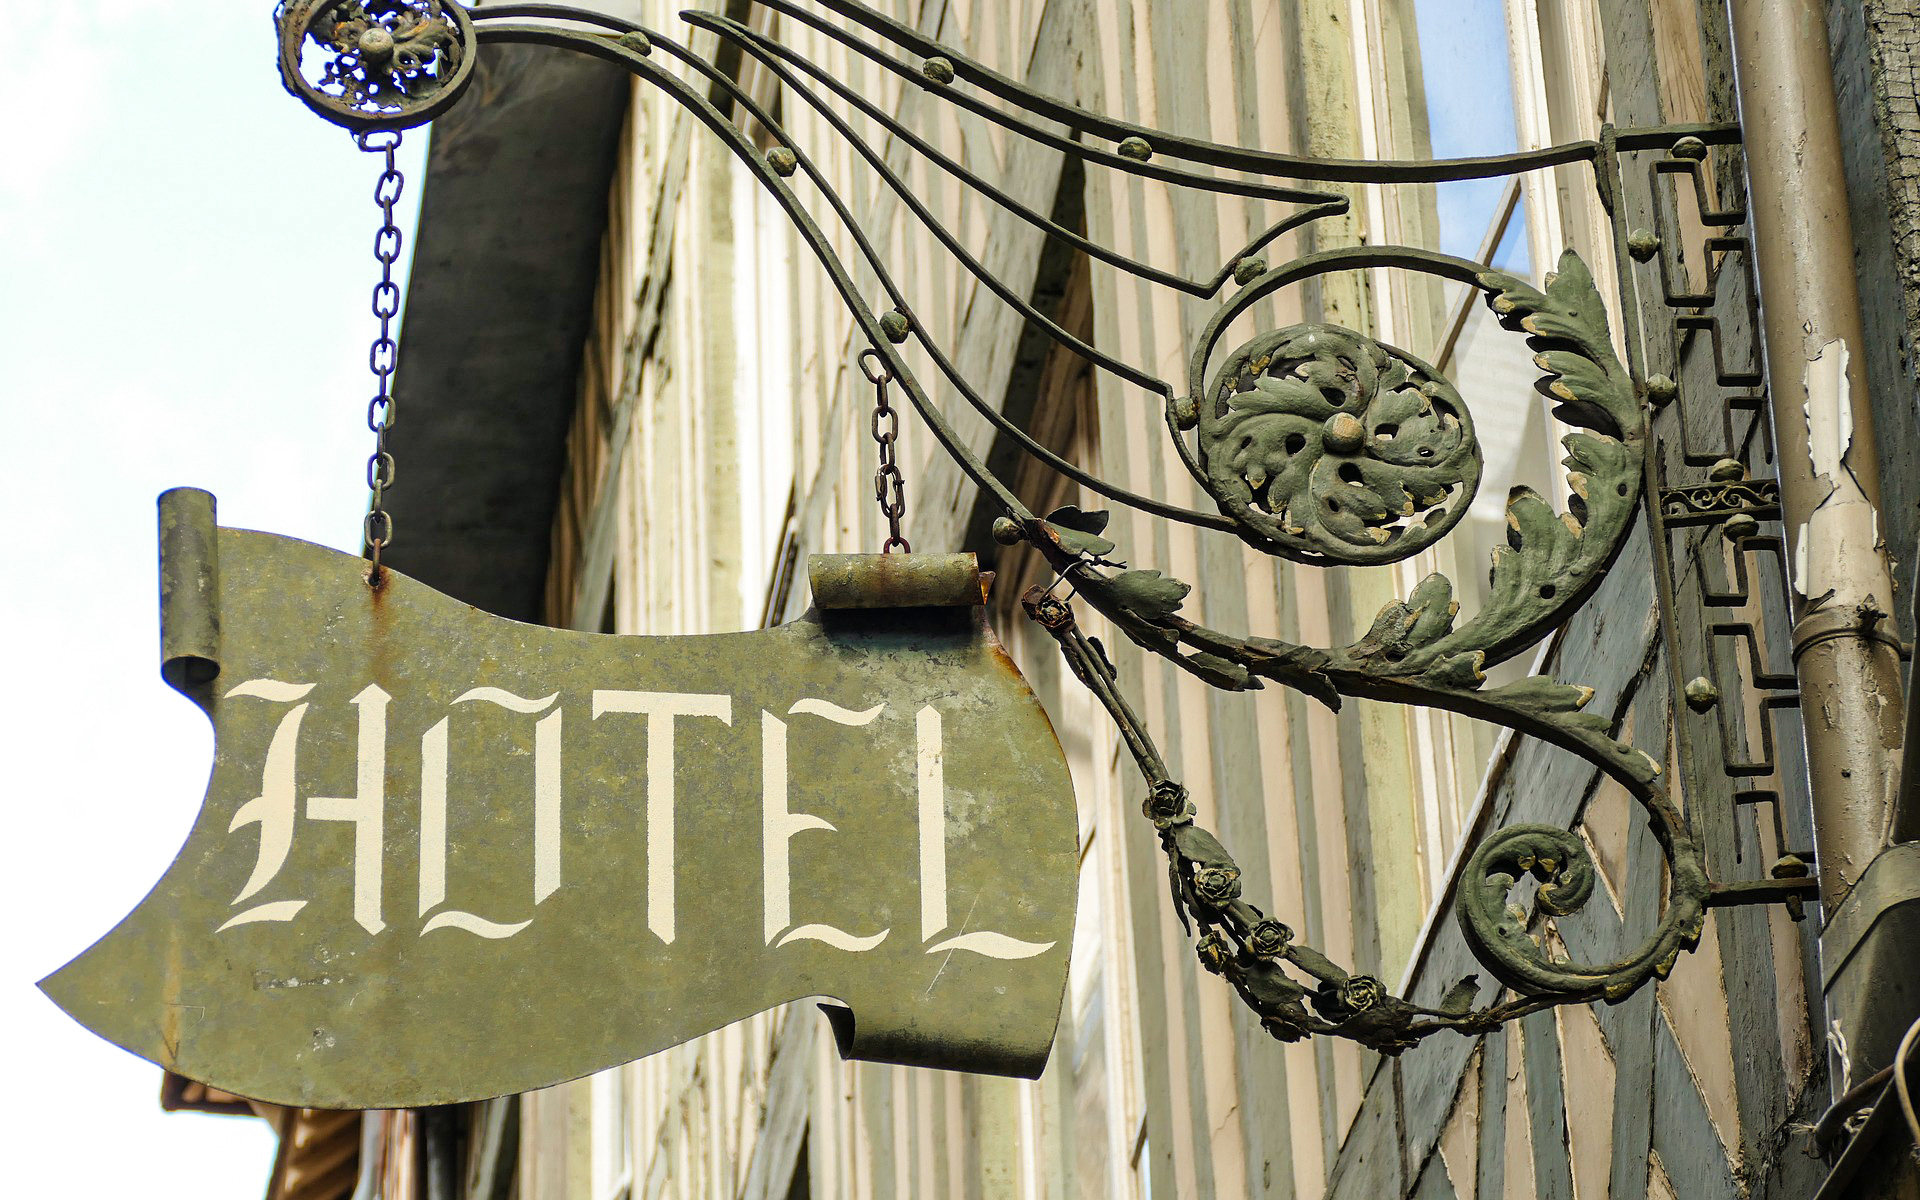 The cheapest hotel in Barcelona